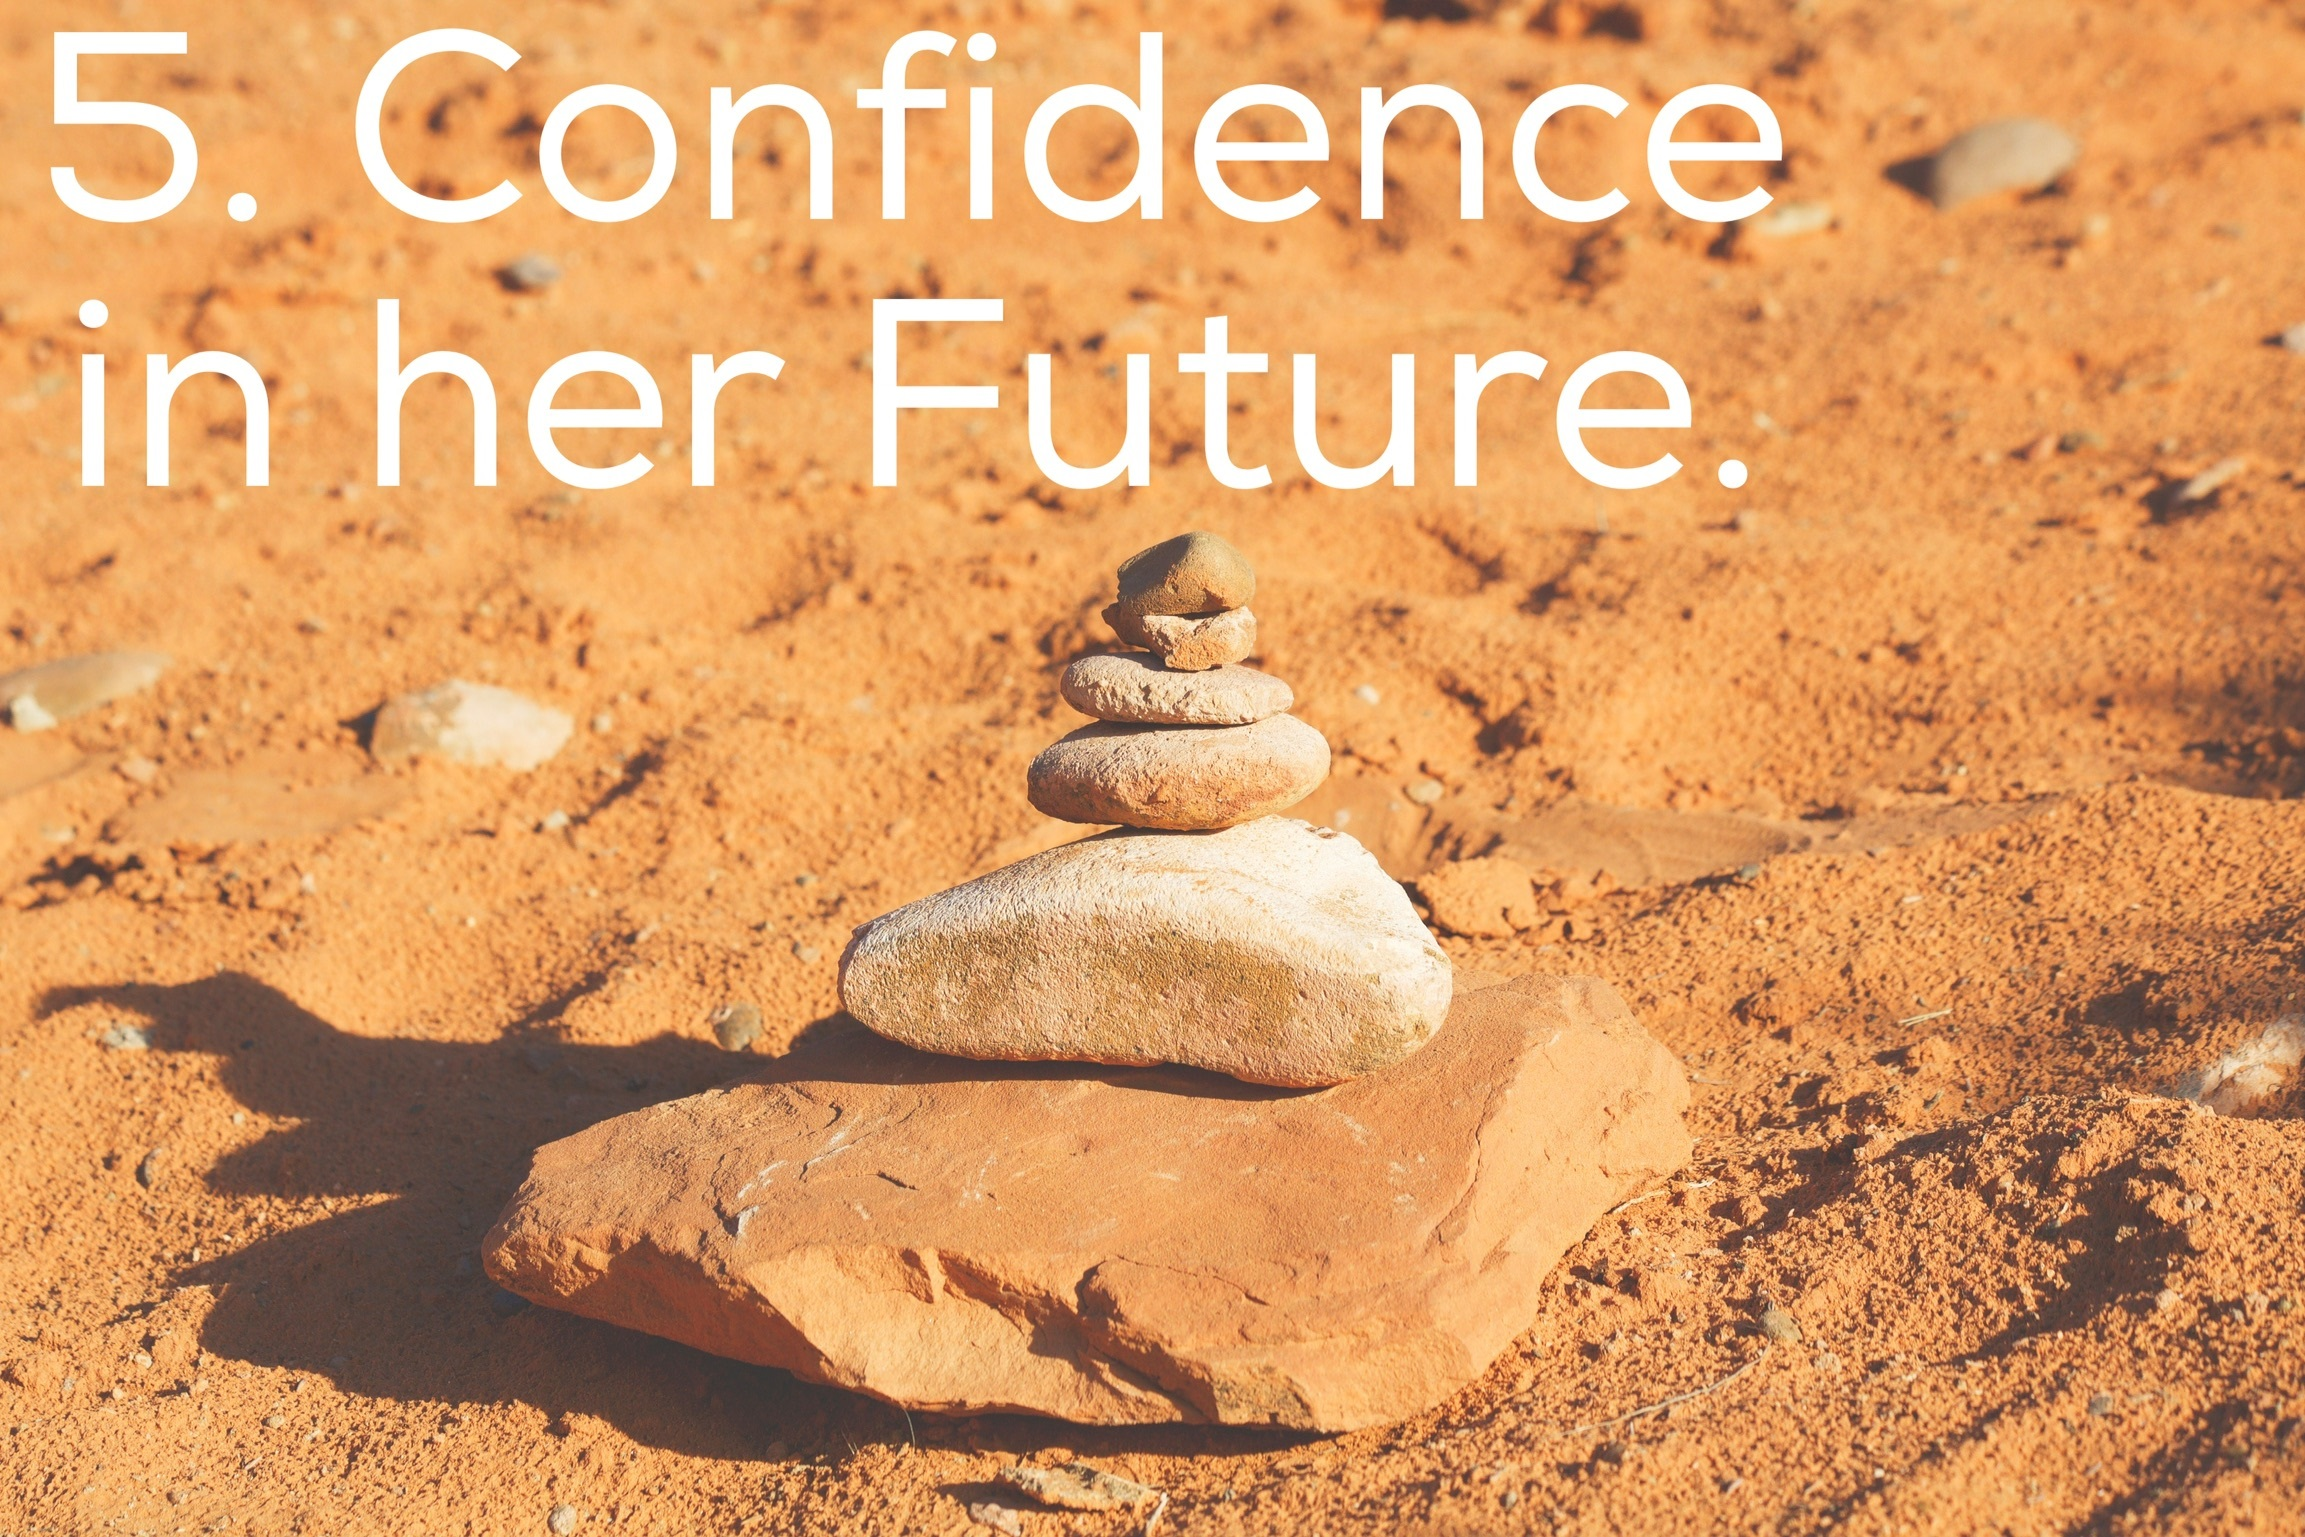 fasd-wishes-confidence